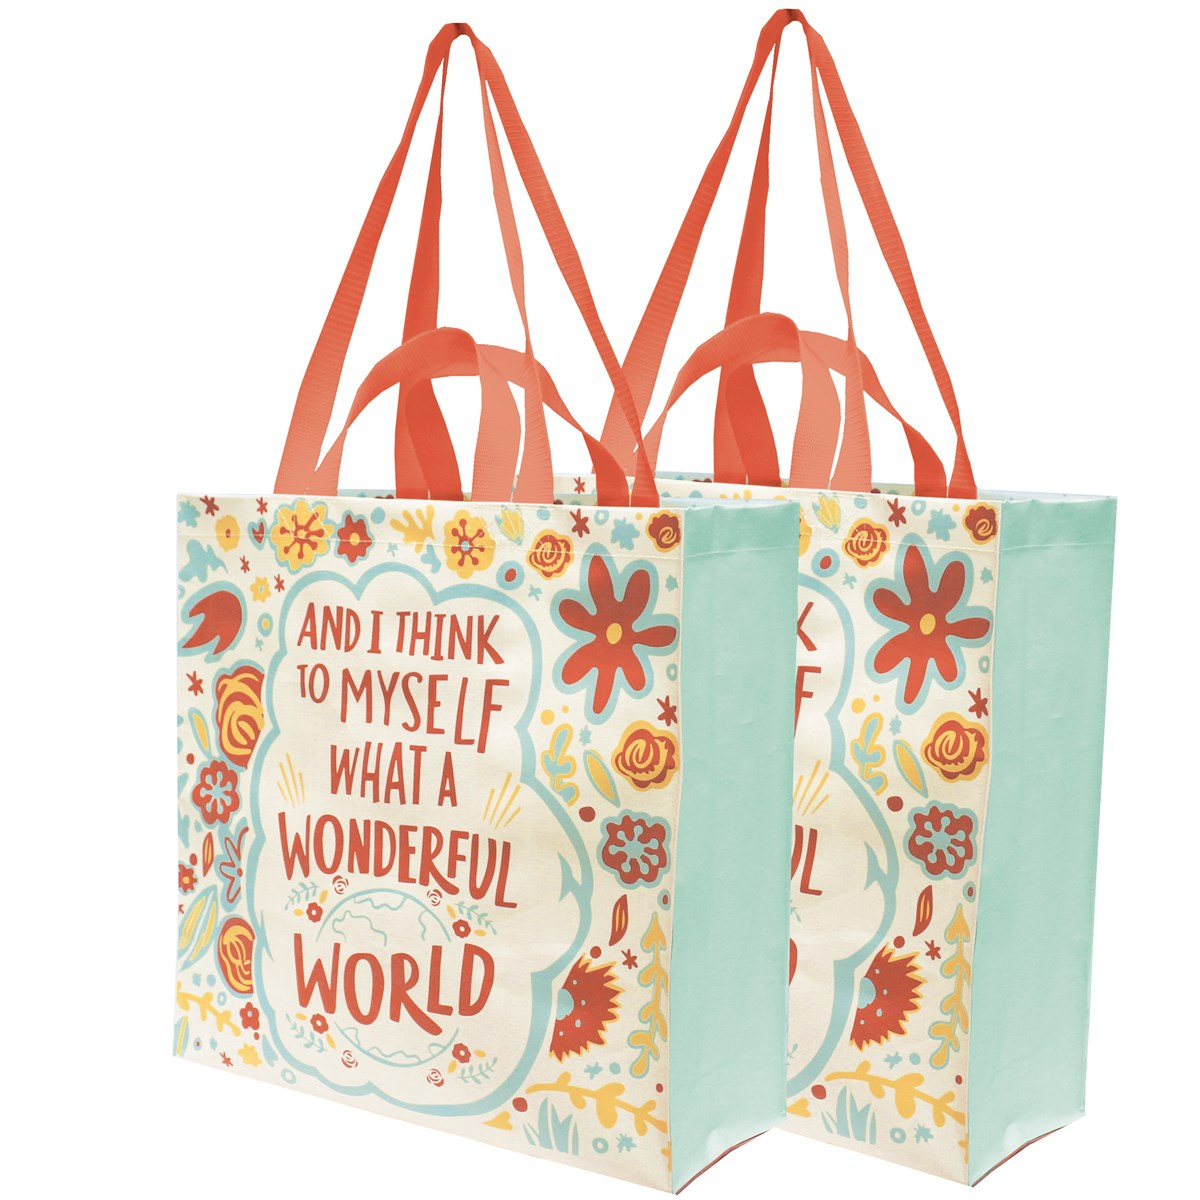 "Market Tote - Think To Myself What Wonderful World - 15.50"" x 15.25"" x 6"" - Post-Consumer Material, Nylon"